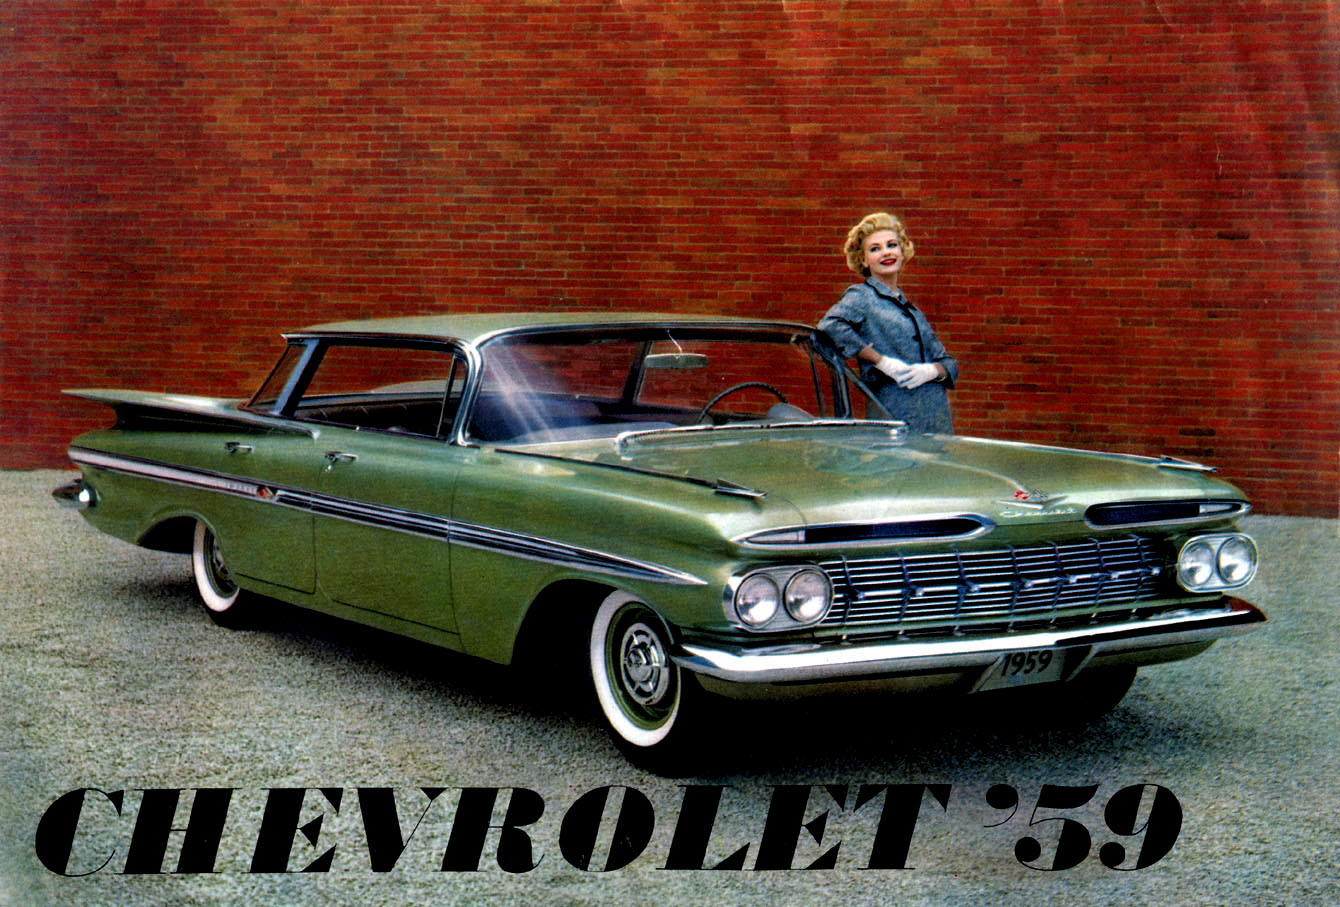 psssst ya wanna by a 1959 chevy bel air only 9 miles on. Black Bedroom Furniture Sets. Home Design Ideas